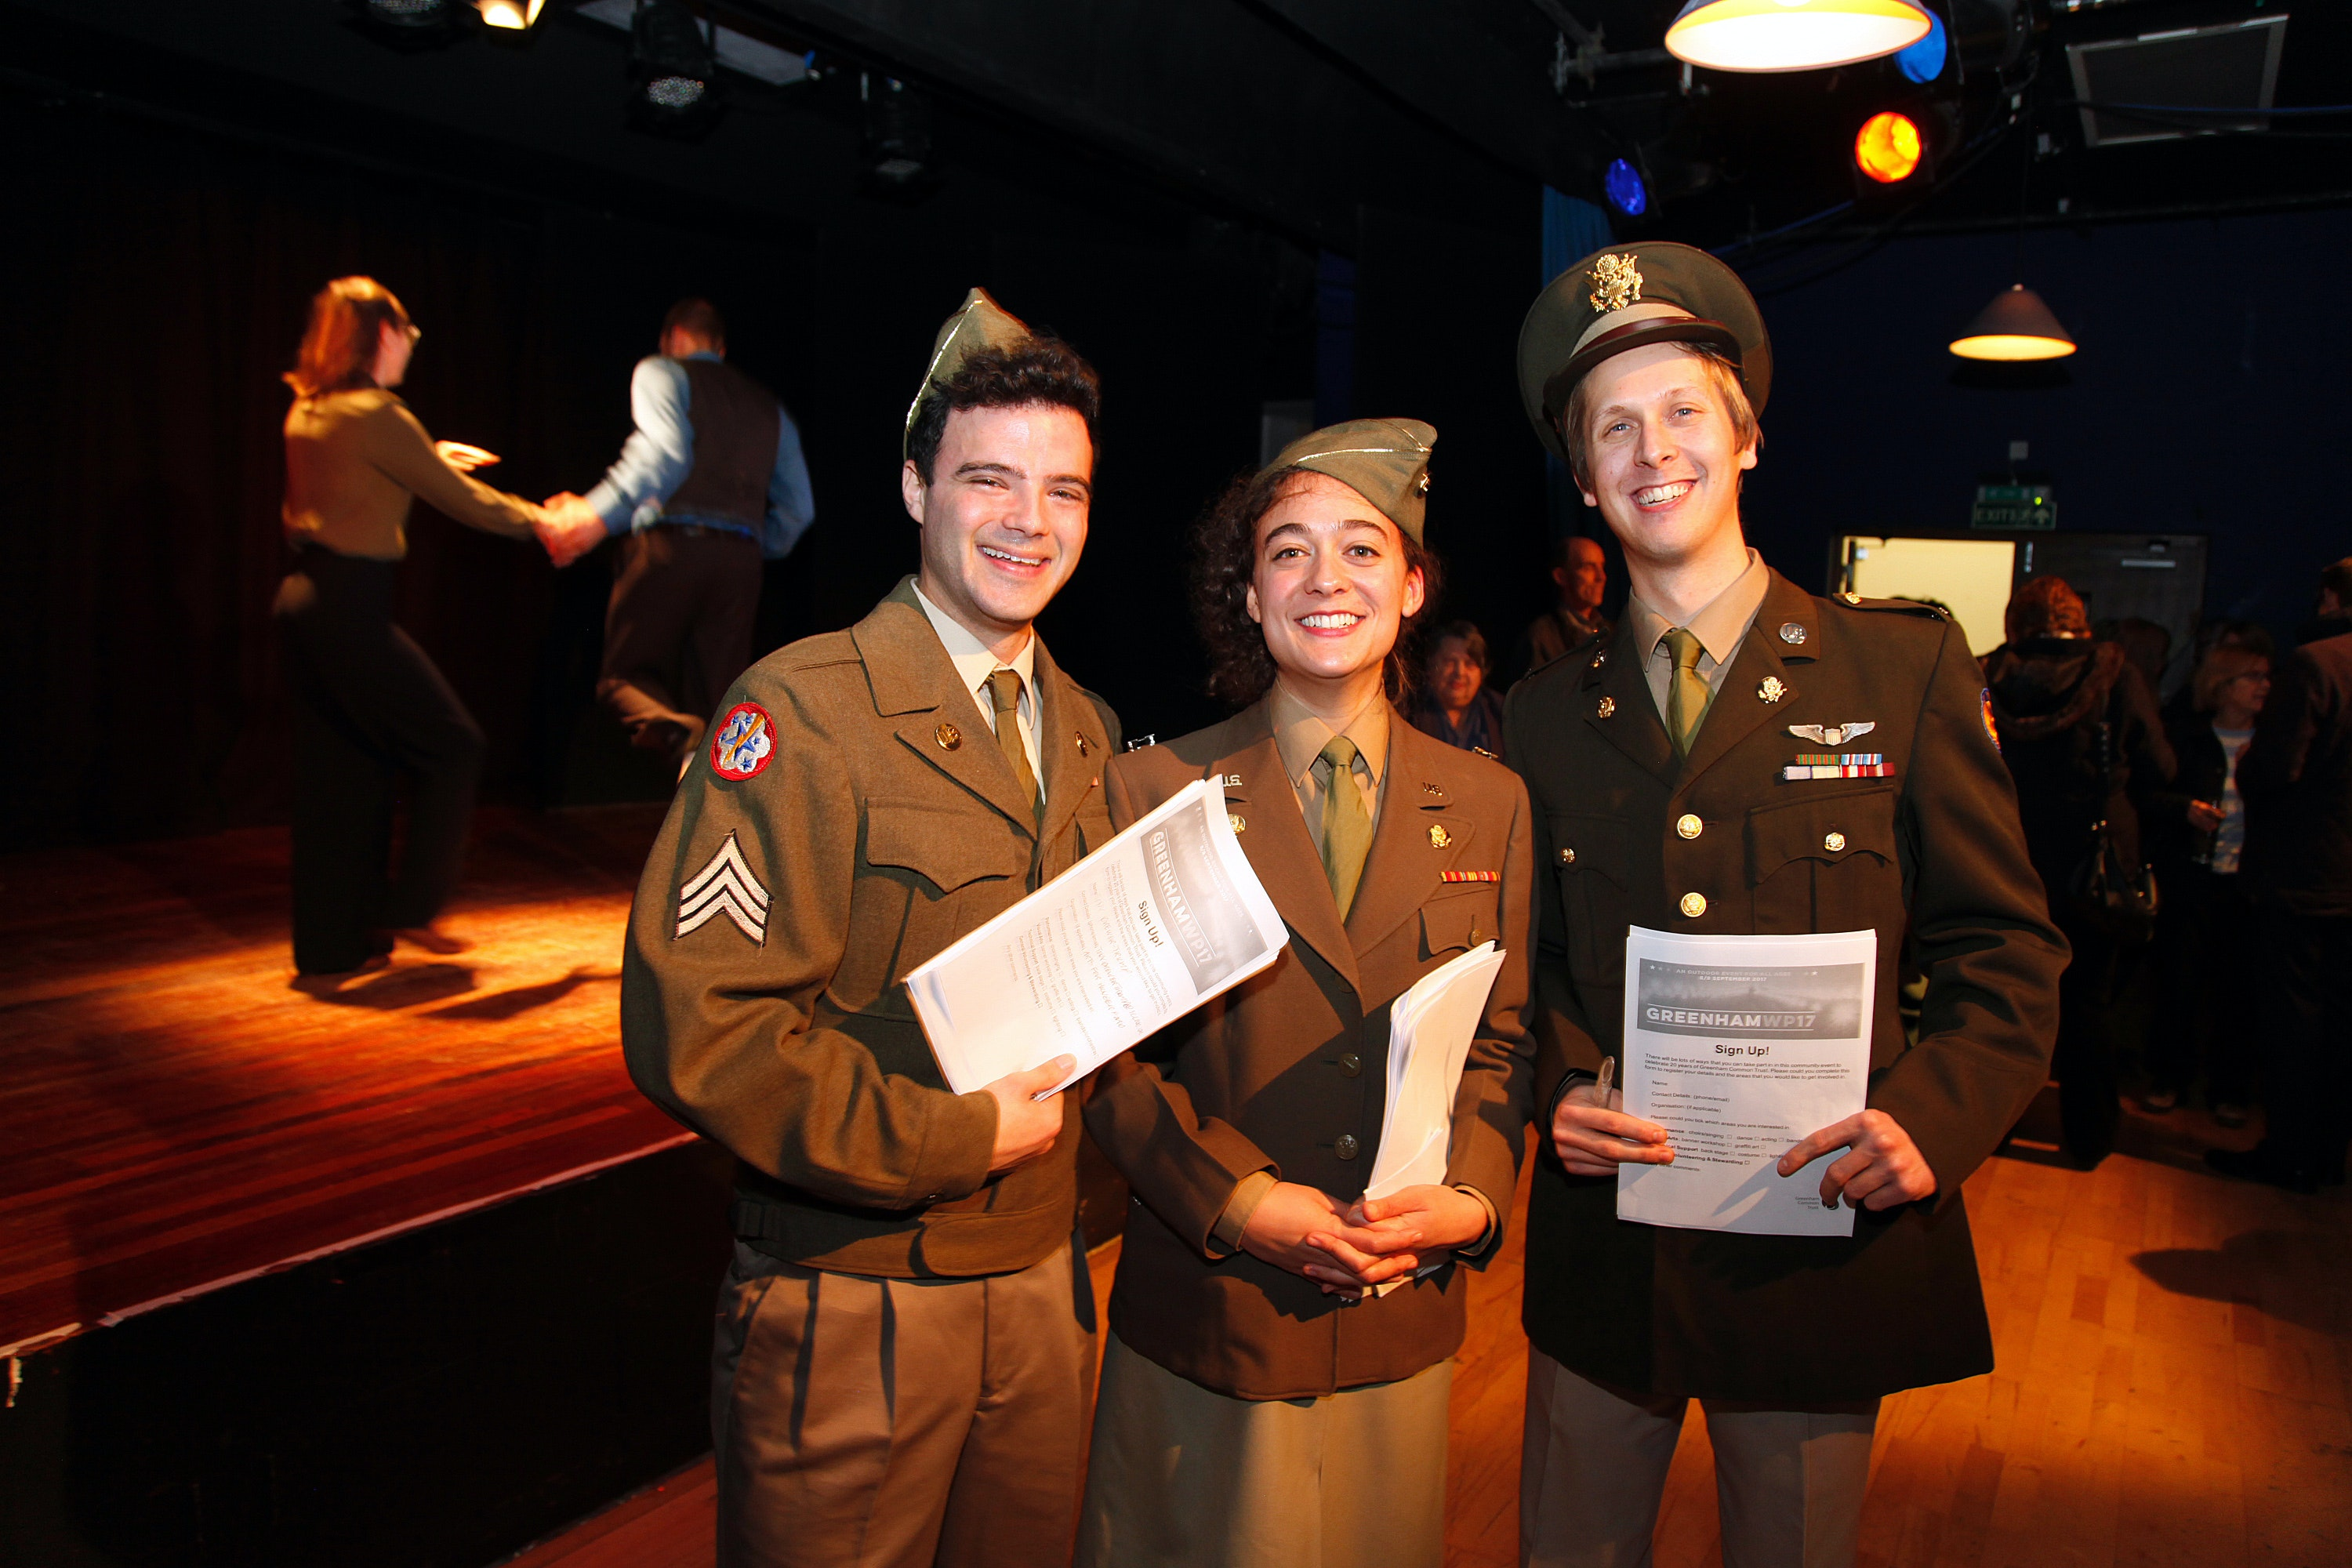 Actors recreate USAF officers on base for the community launch